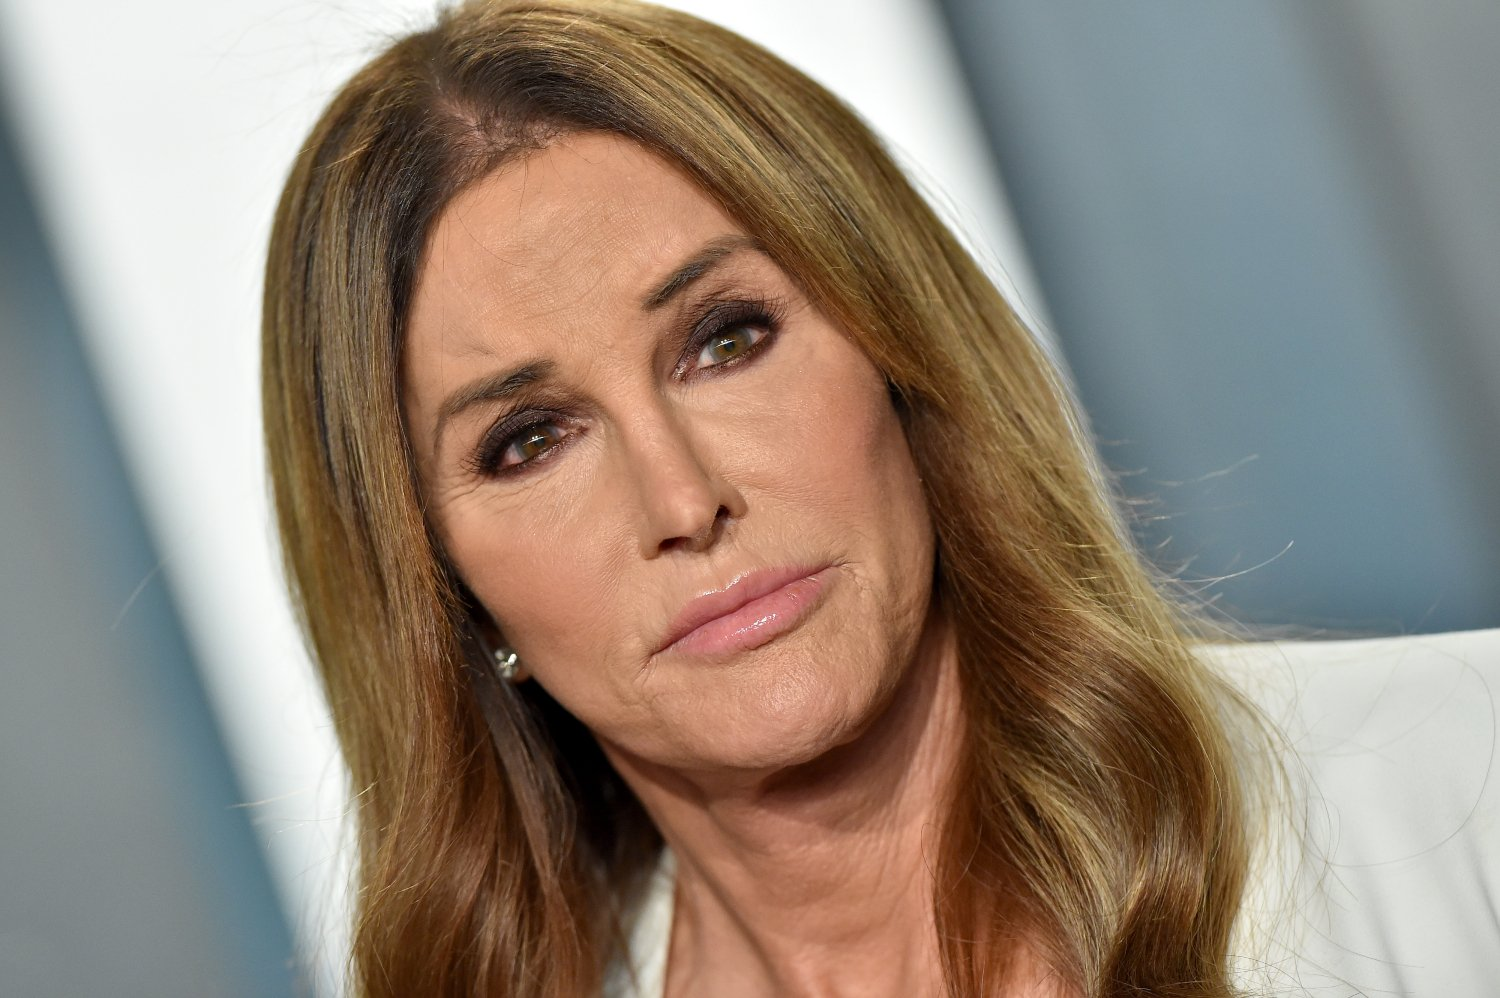 Caitlyn Jenner Dragged On Social Media After Arguing Against Trans